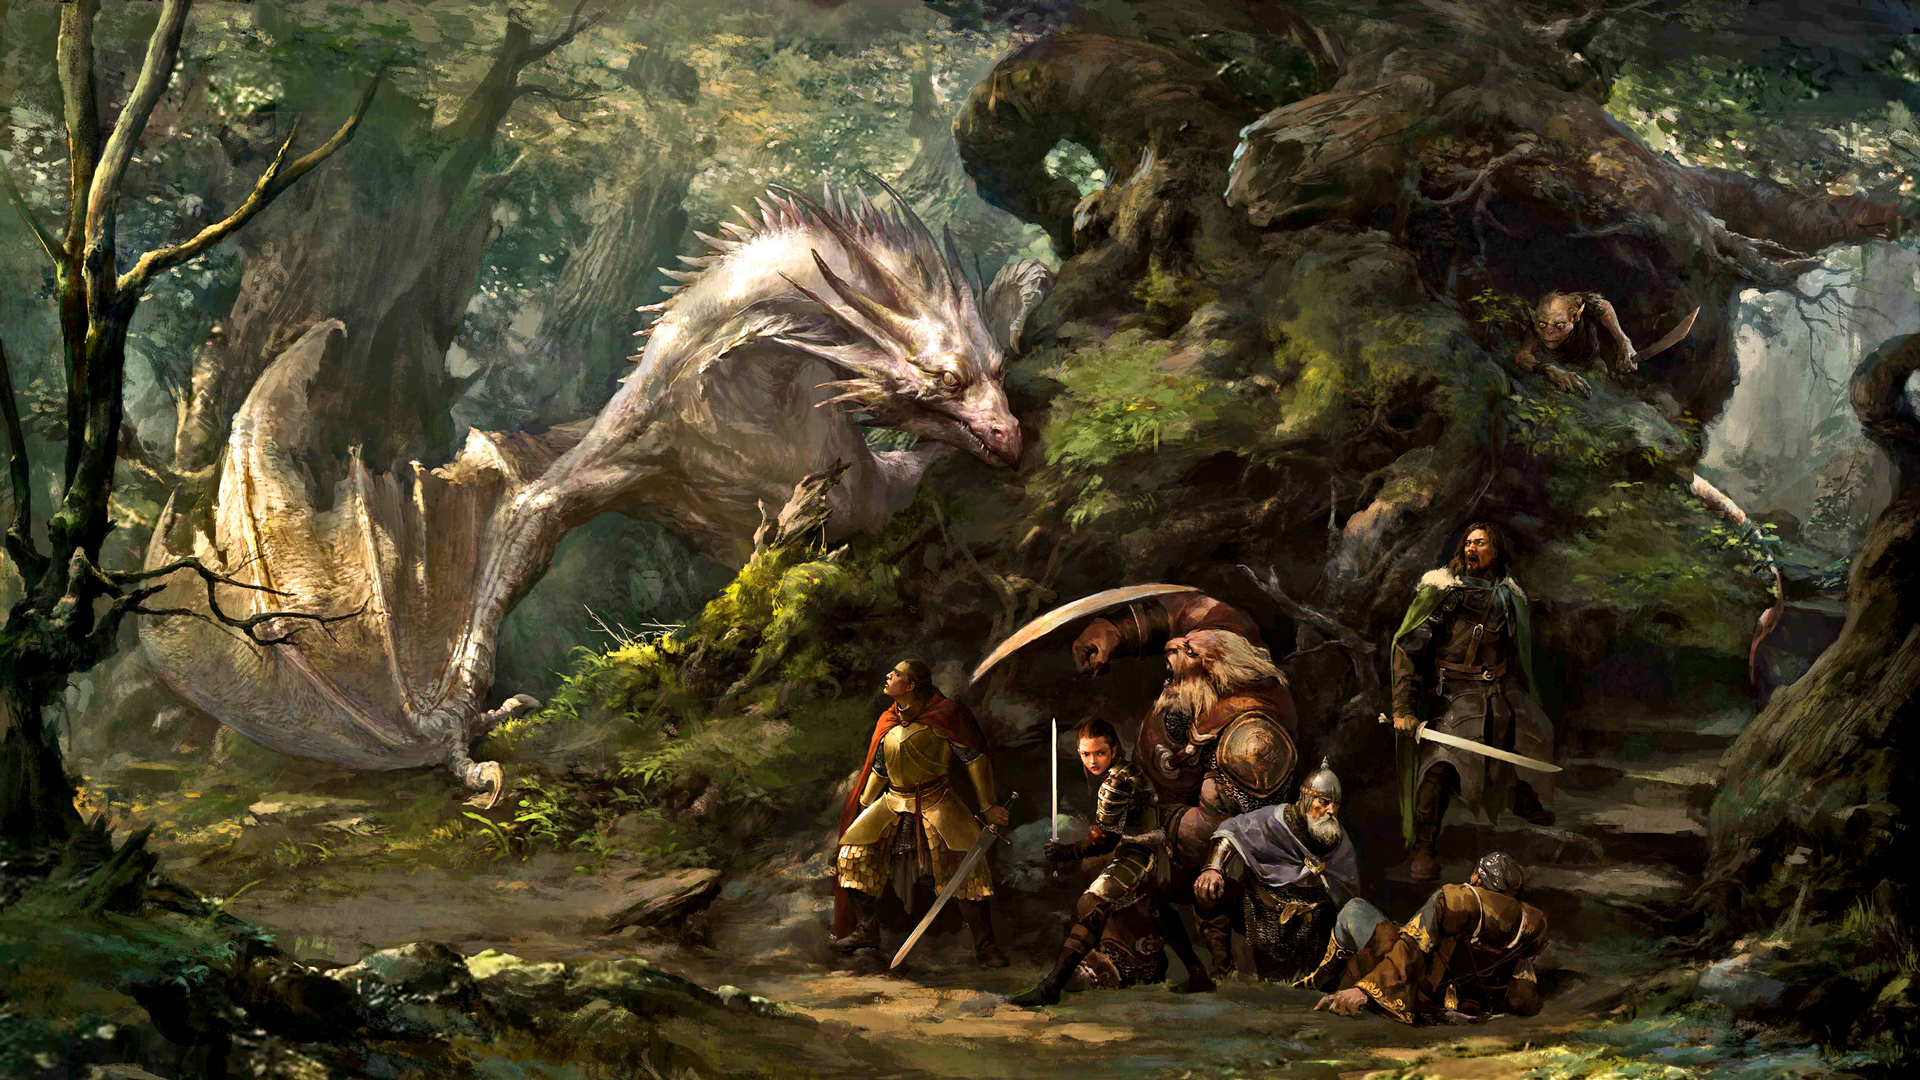 the elder scrolls online iphone 5 wallpaper